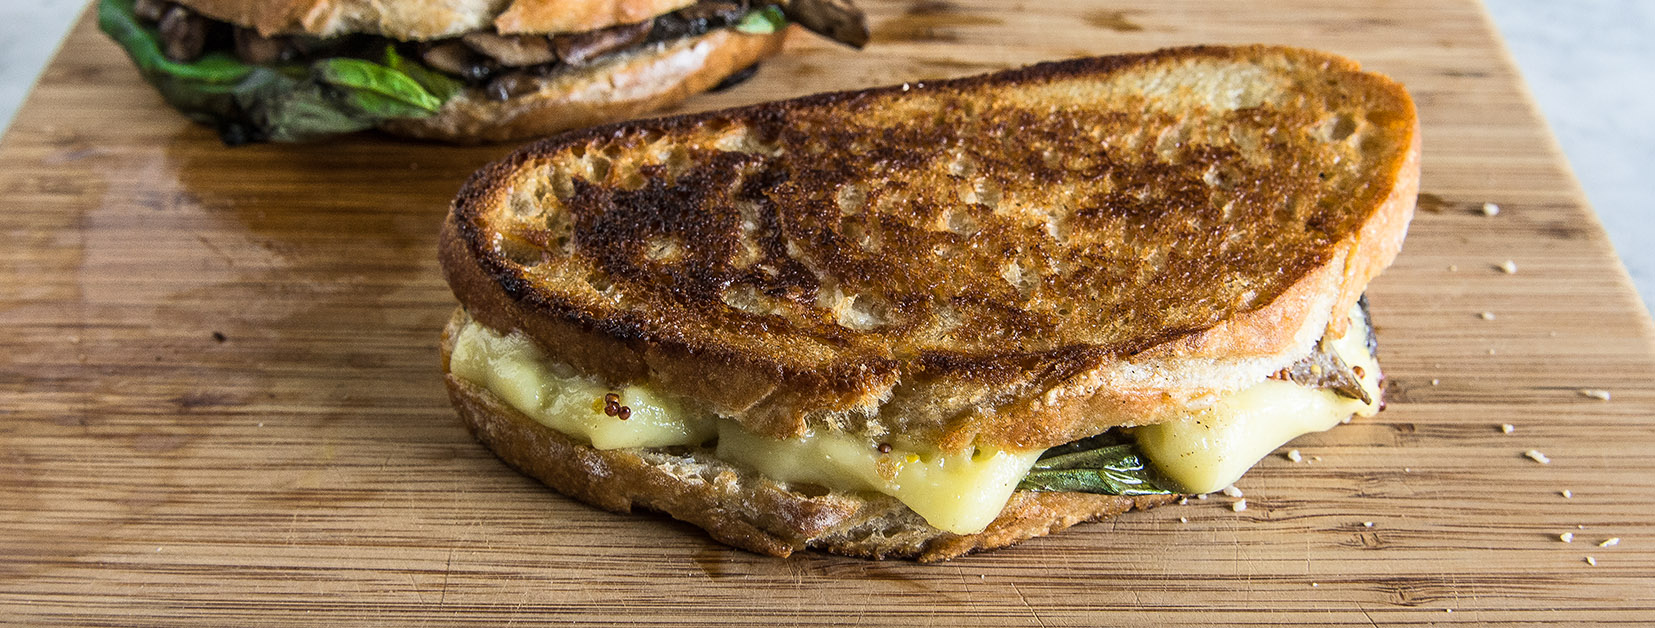 cover-Grilled Brie Mushroom Sandwich 5 (1 of 1)